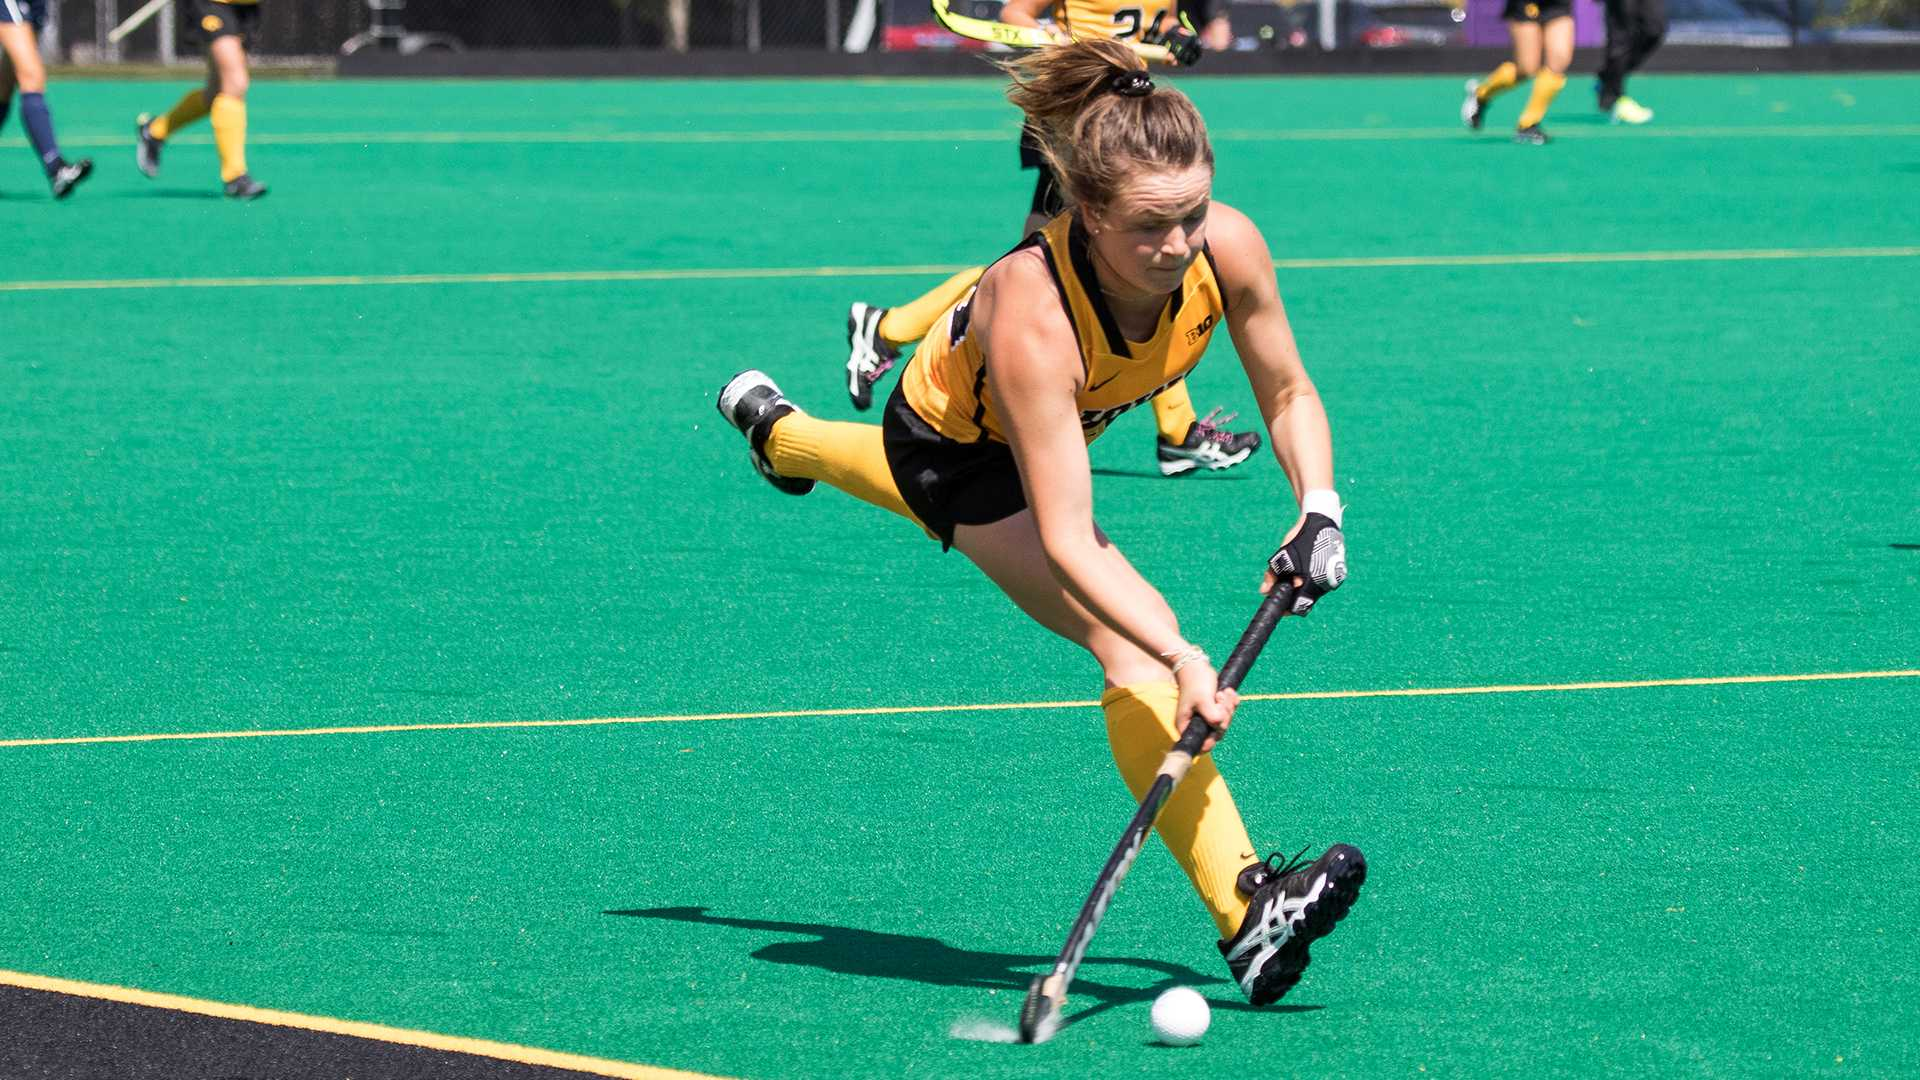 Iowa's Madeleine Murphy lunges for the ball during the Iowa-University of New Hampshire field hockey match on Sunday, 10 September, 2017. Iowa defeated UNH by a final score of 7-1. (David Harmantas/The Daily Iowan)